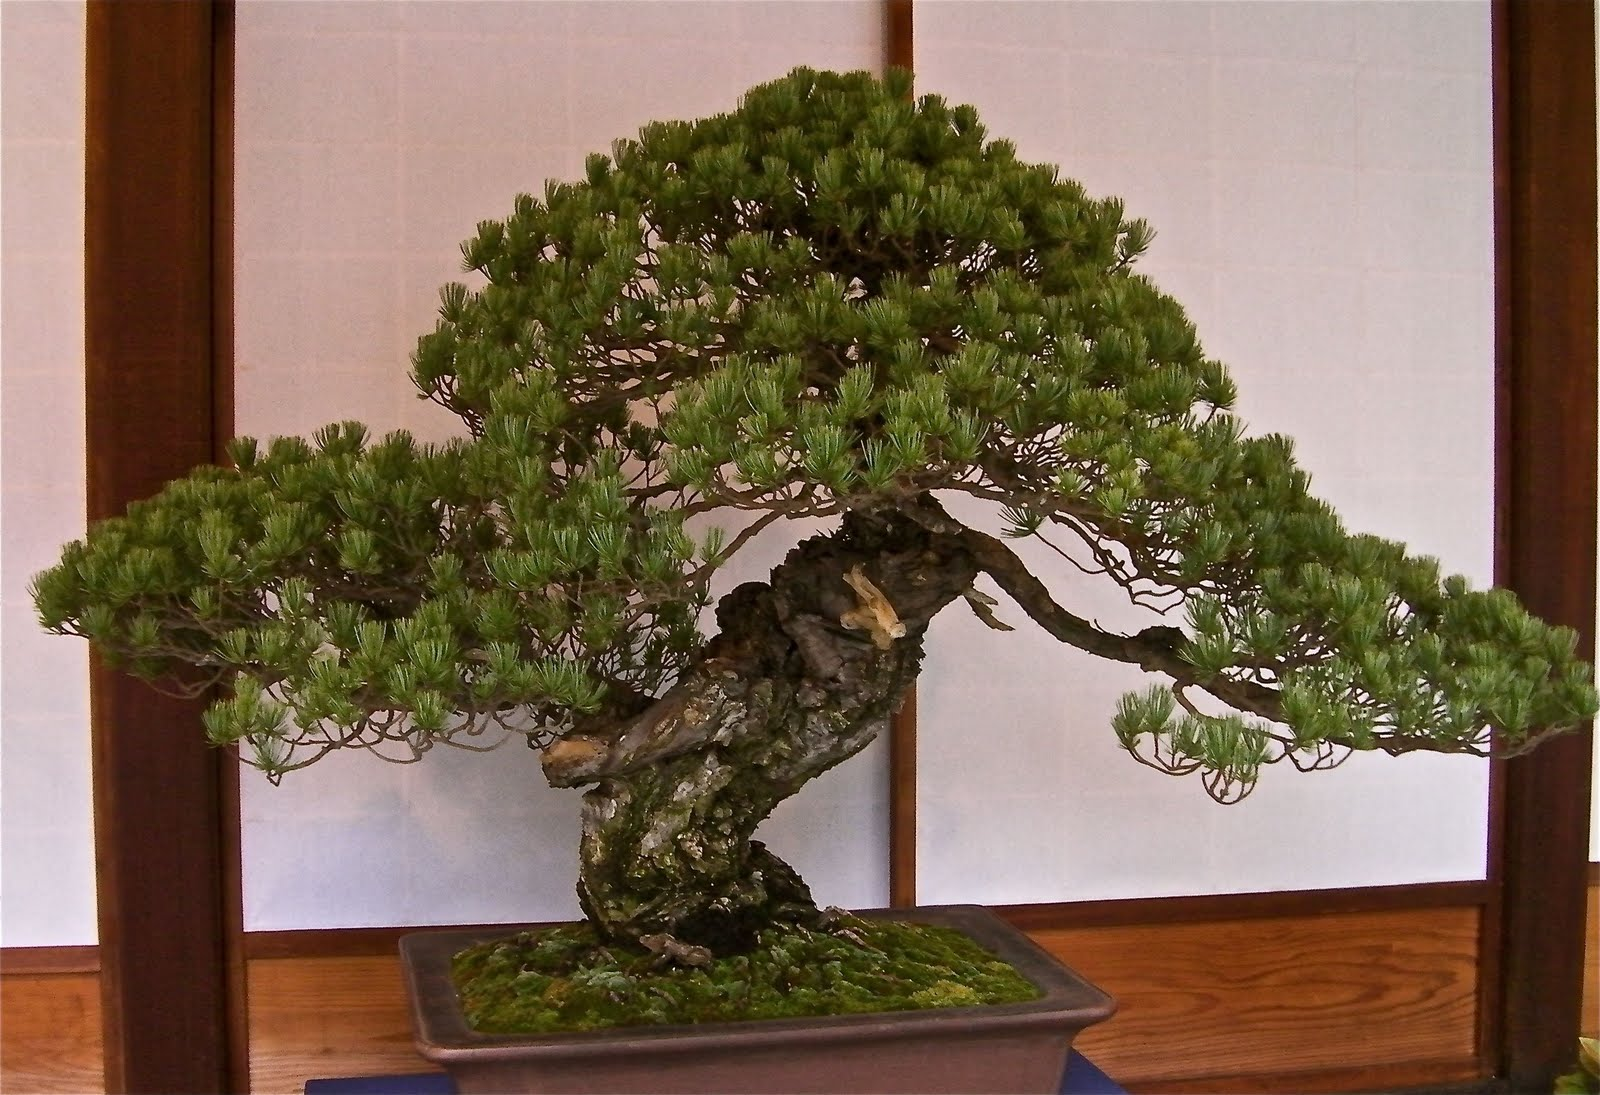 bonsai tree The bonsai is a delightful and fun plant to have around the home or office though it does need proper care and attention, don't let that intimidate you.